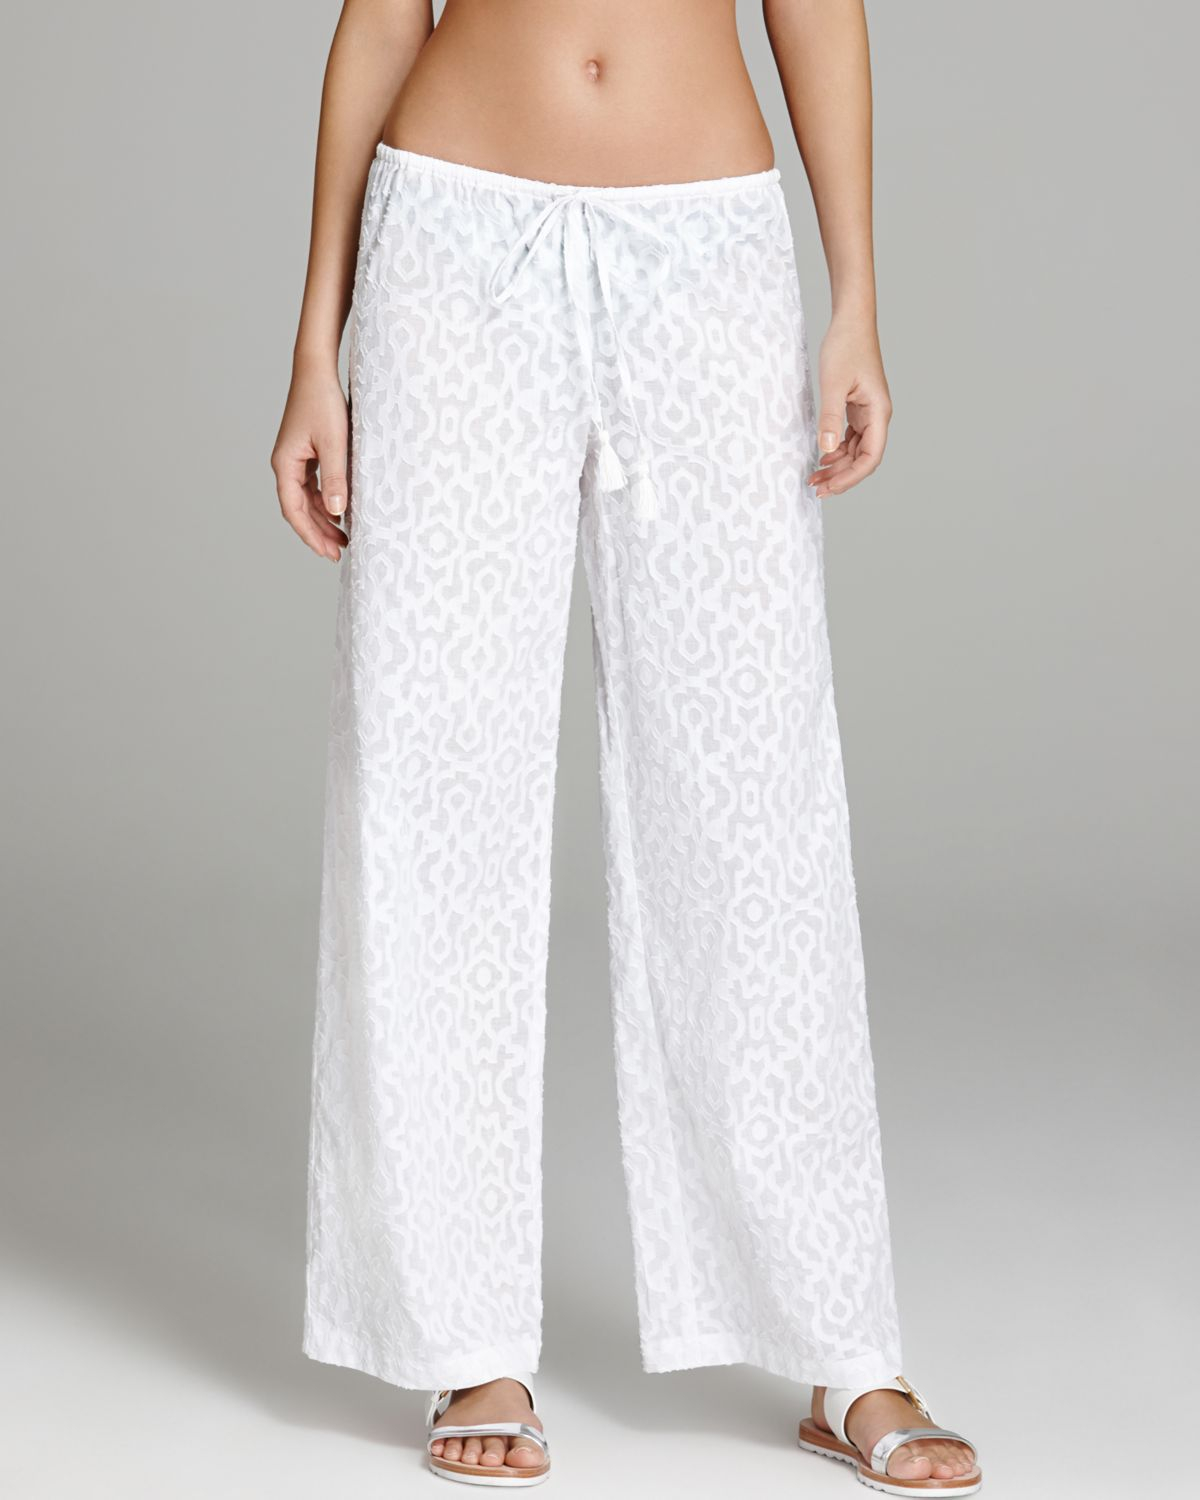 Tommy Bahama Woven Medallion Swim Cover Up Pants in White